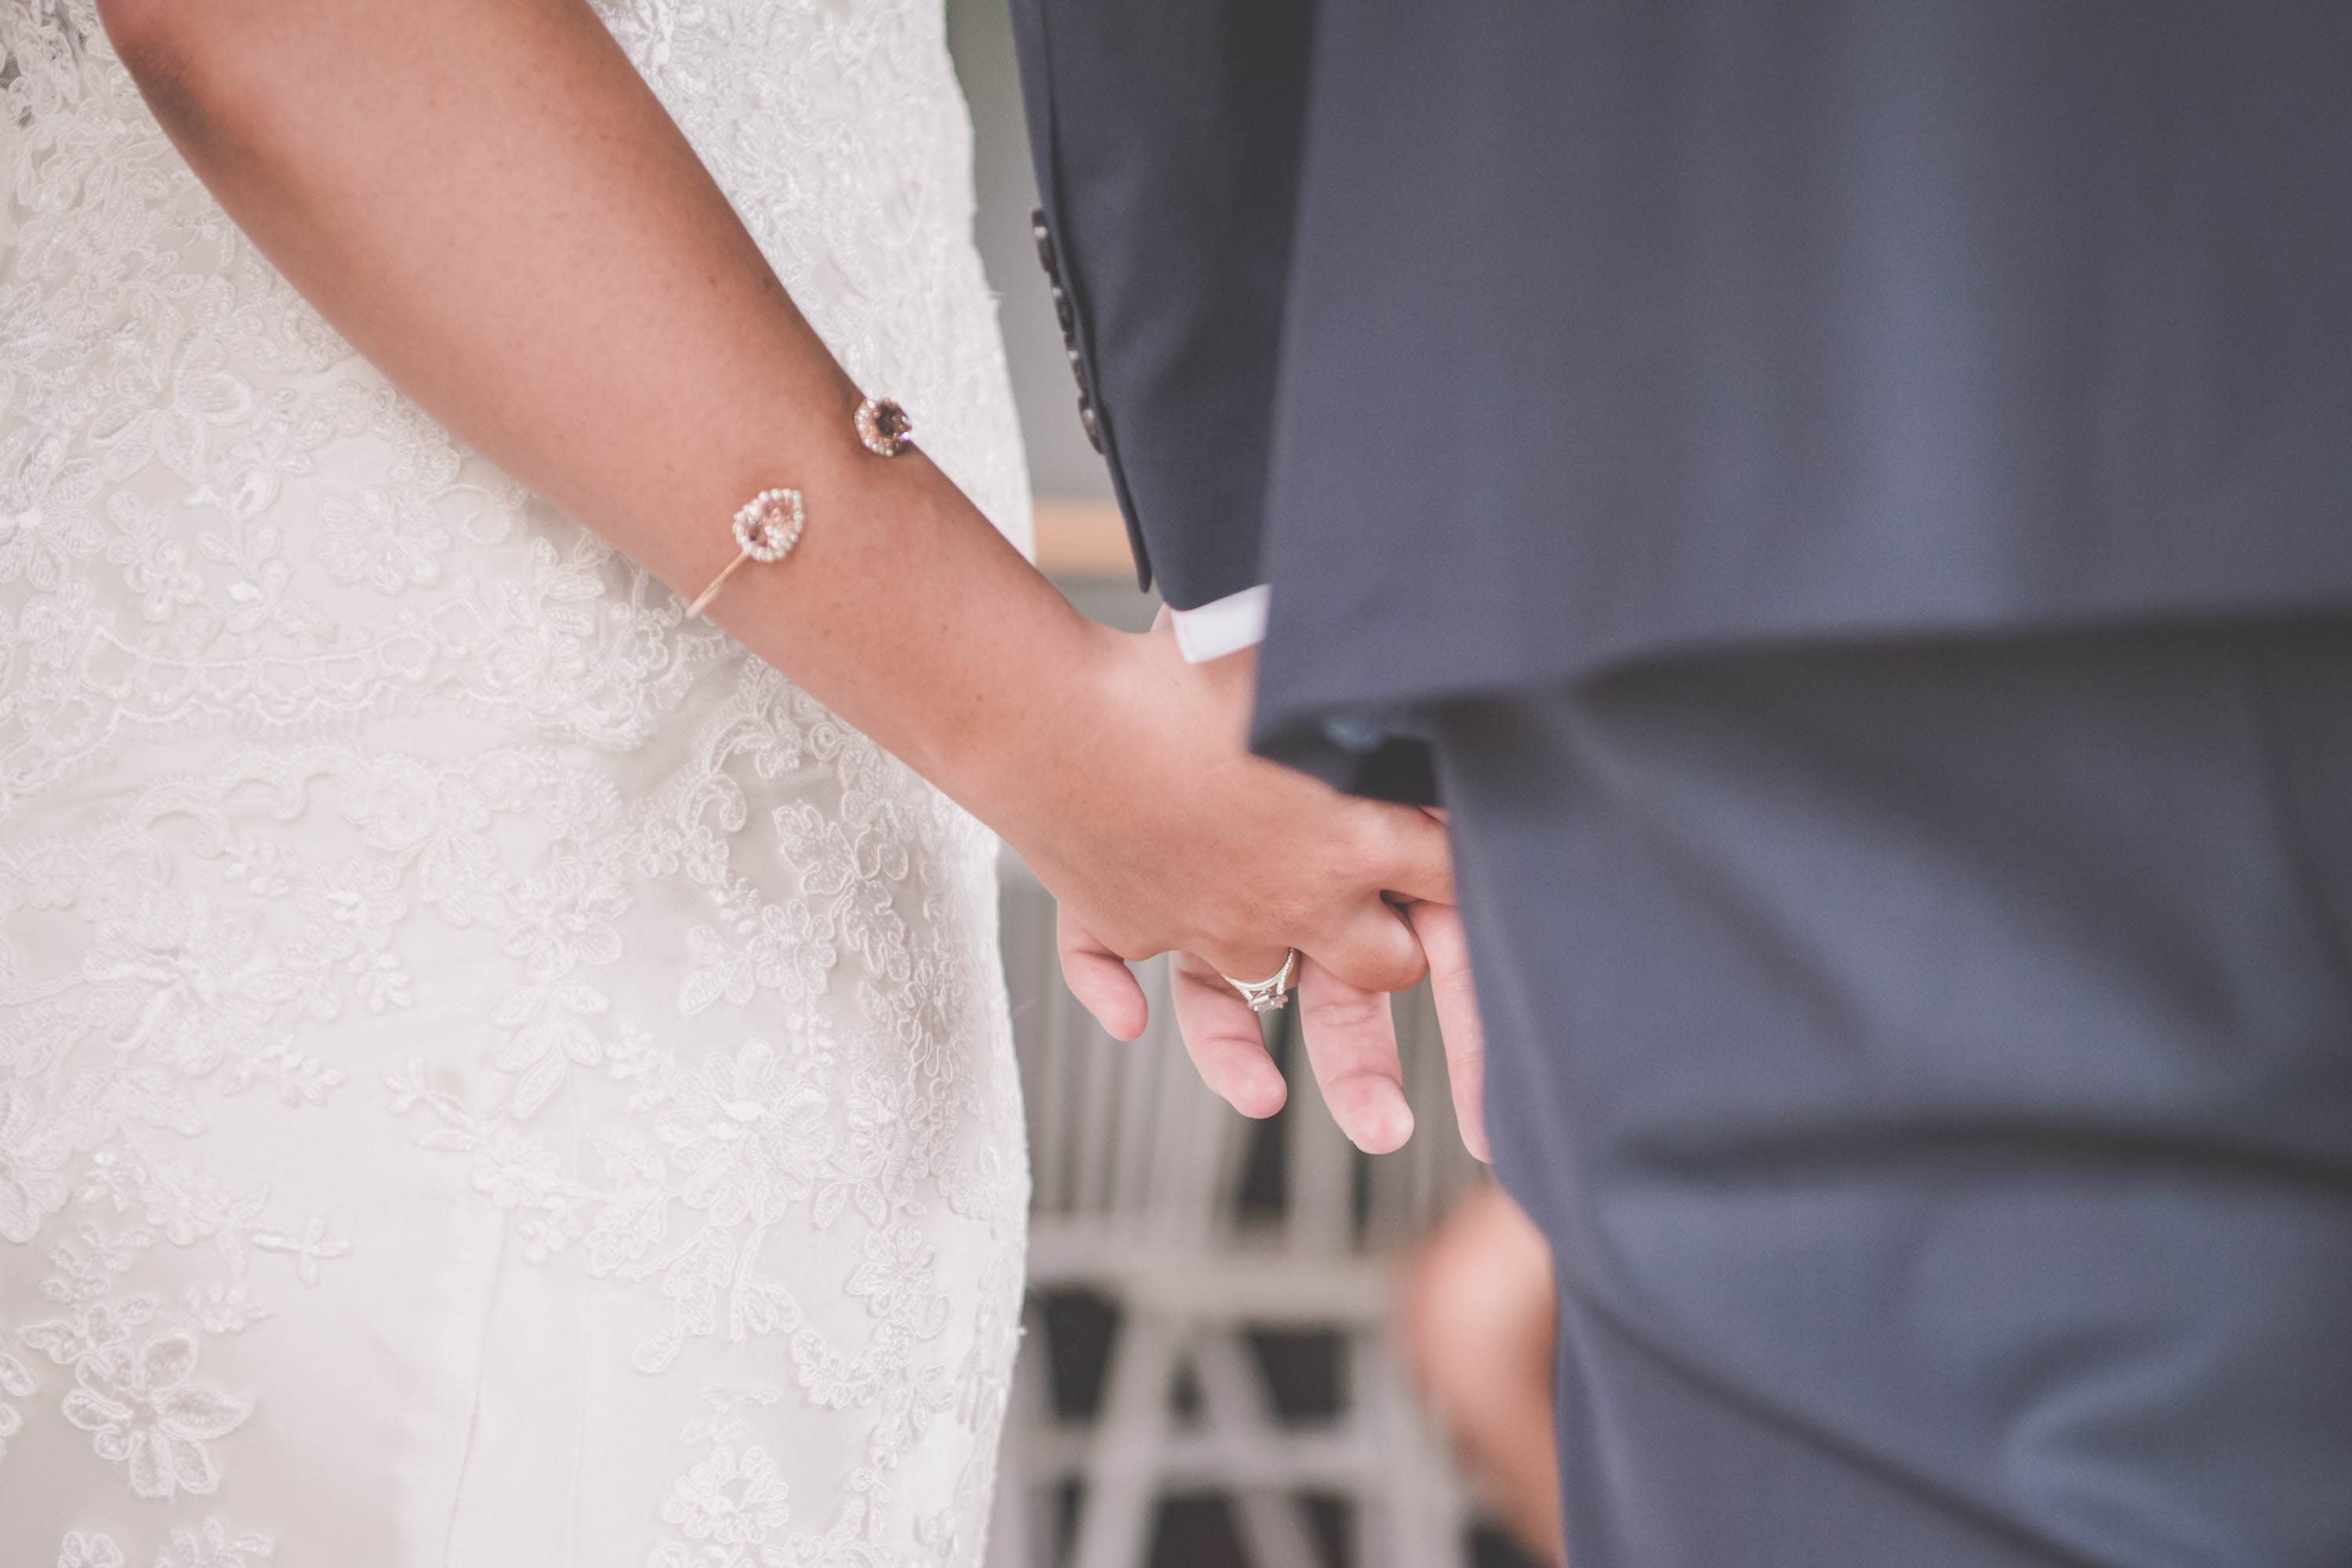 A bride and groom hold hands at their wedding